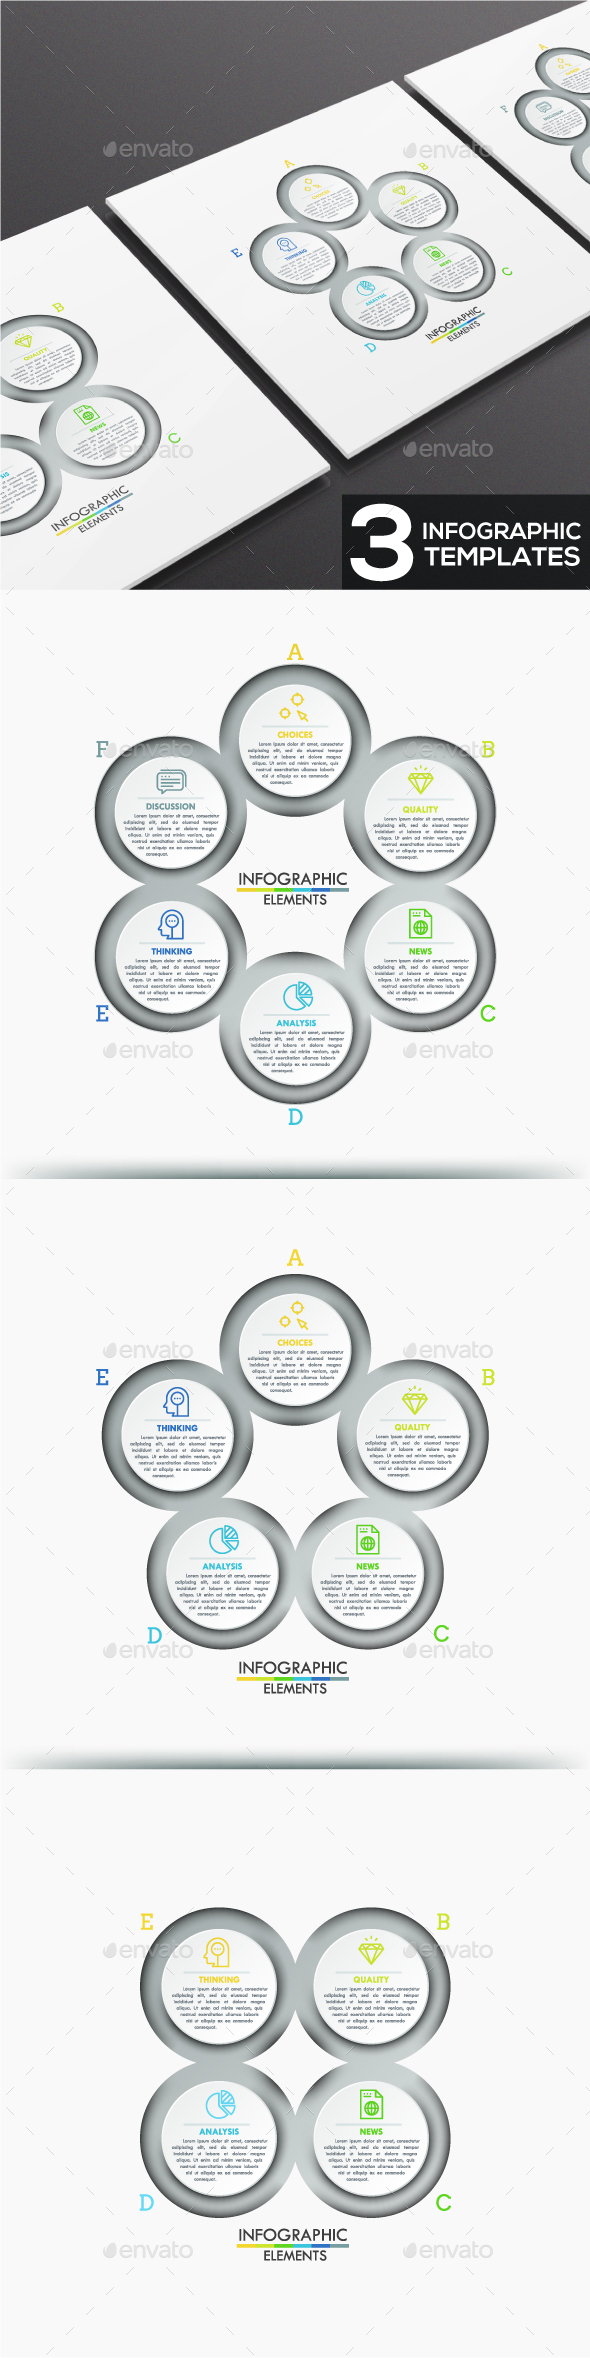 Modern Infographic Circles Templates (3 Items) - Infographics